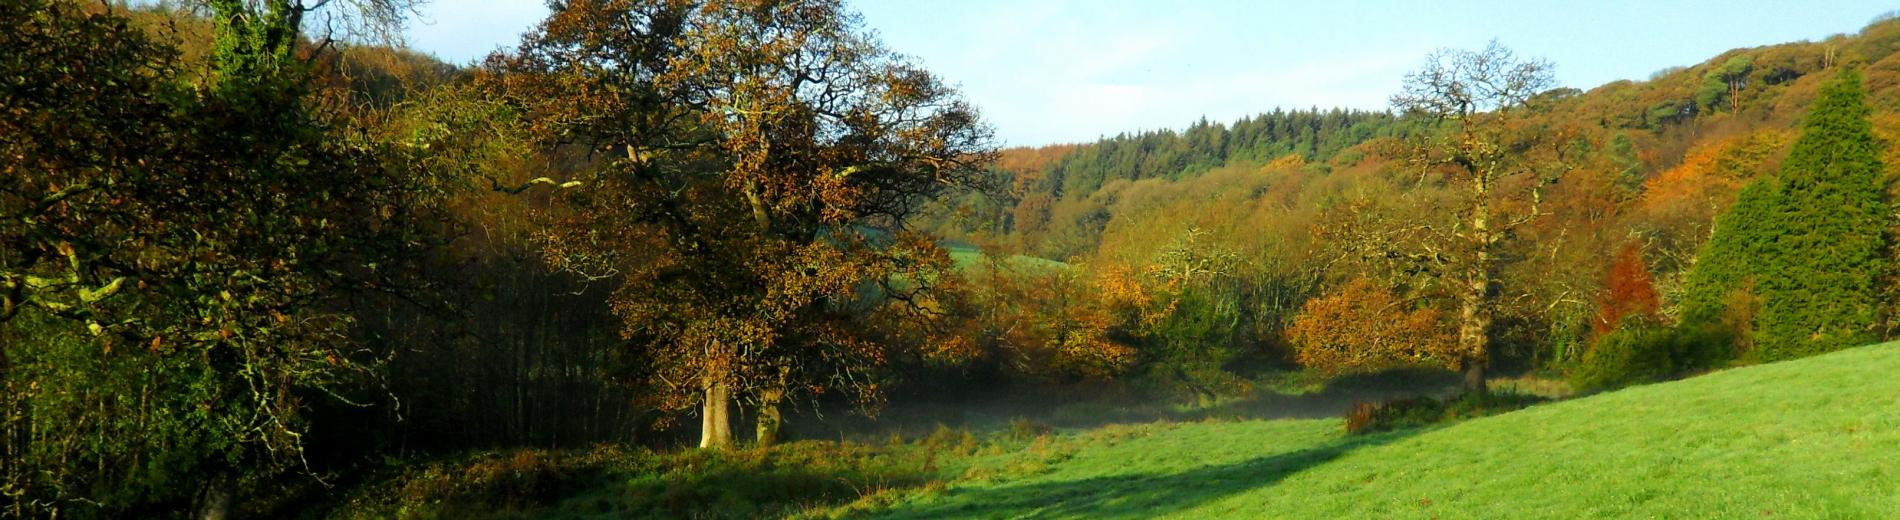 Spreacombe Valley at Autumn